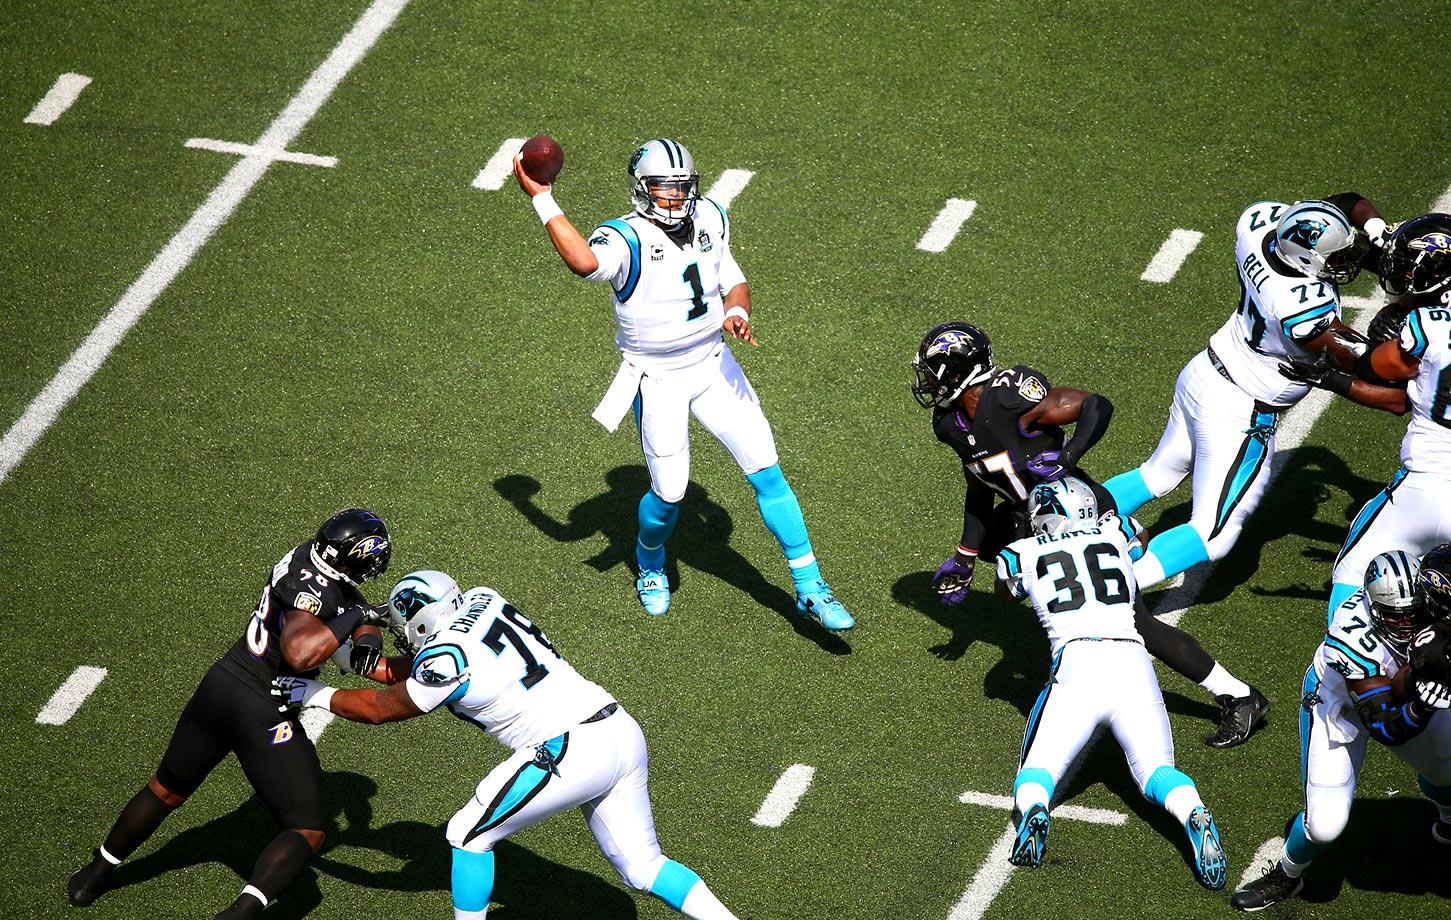 Cam Newton stands in the pocket and throws a pass against the Baltimore Ravens in a September 2014 game. The Ravens won 38-10 as Newton was harassed all game by the defensive front.                                                              Text credit: Daniel Hersh